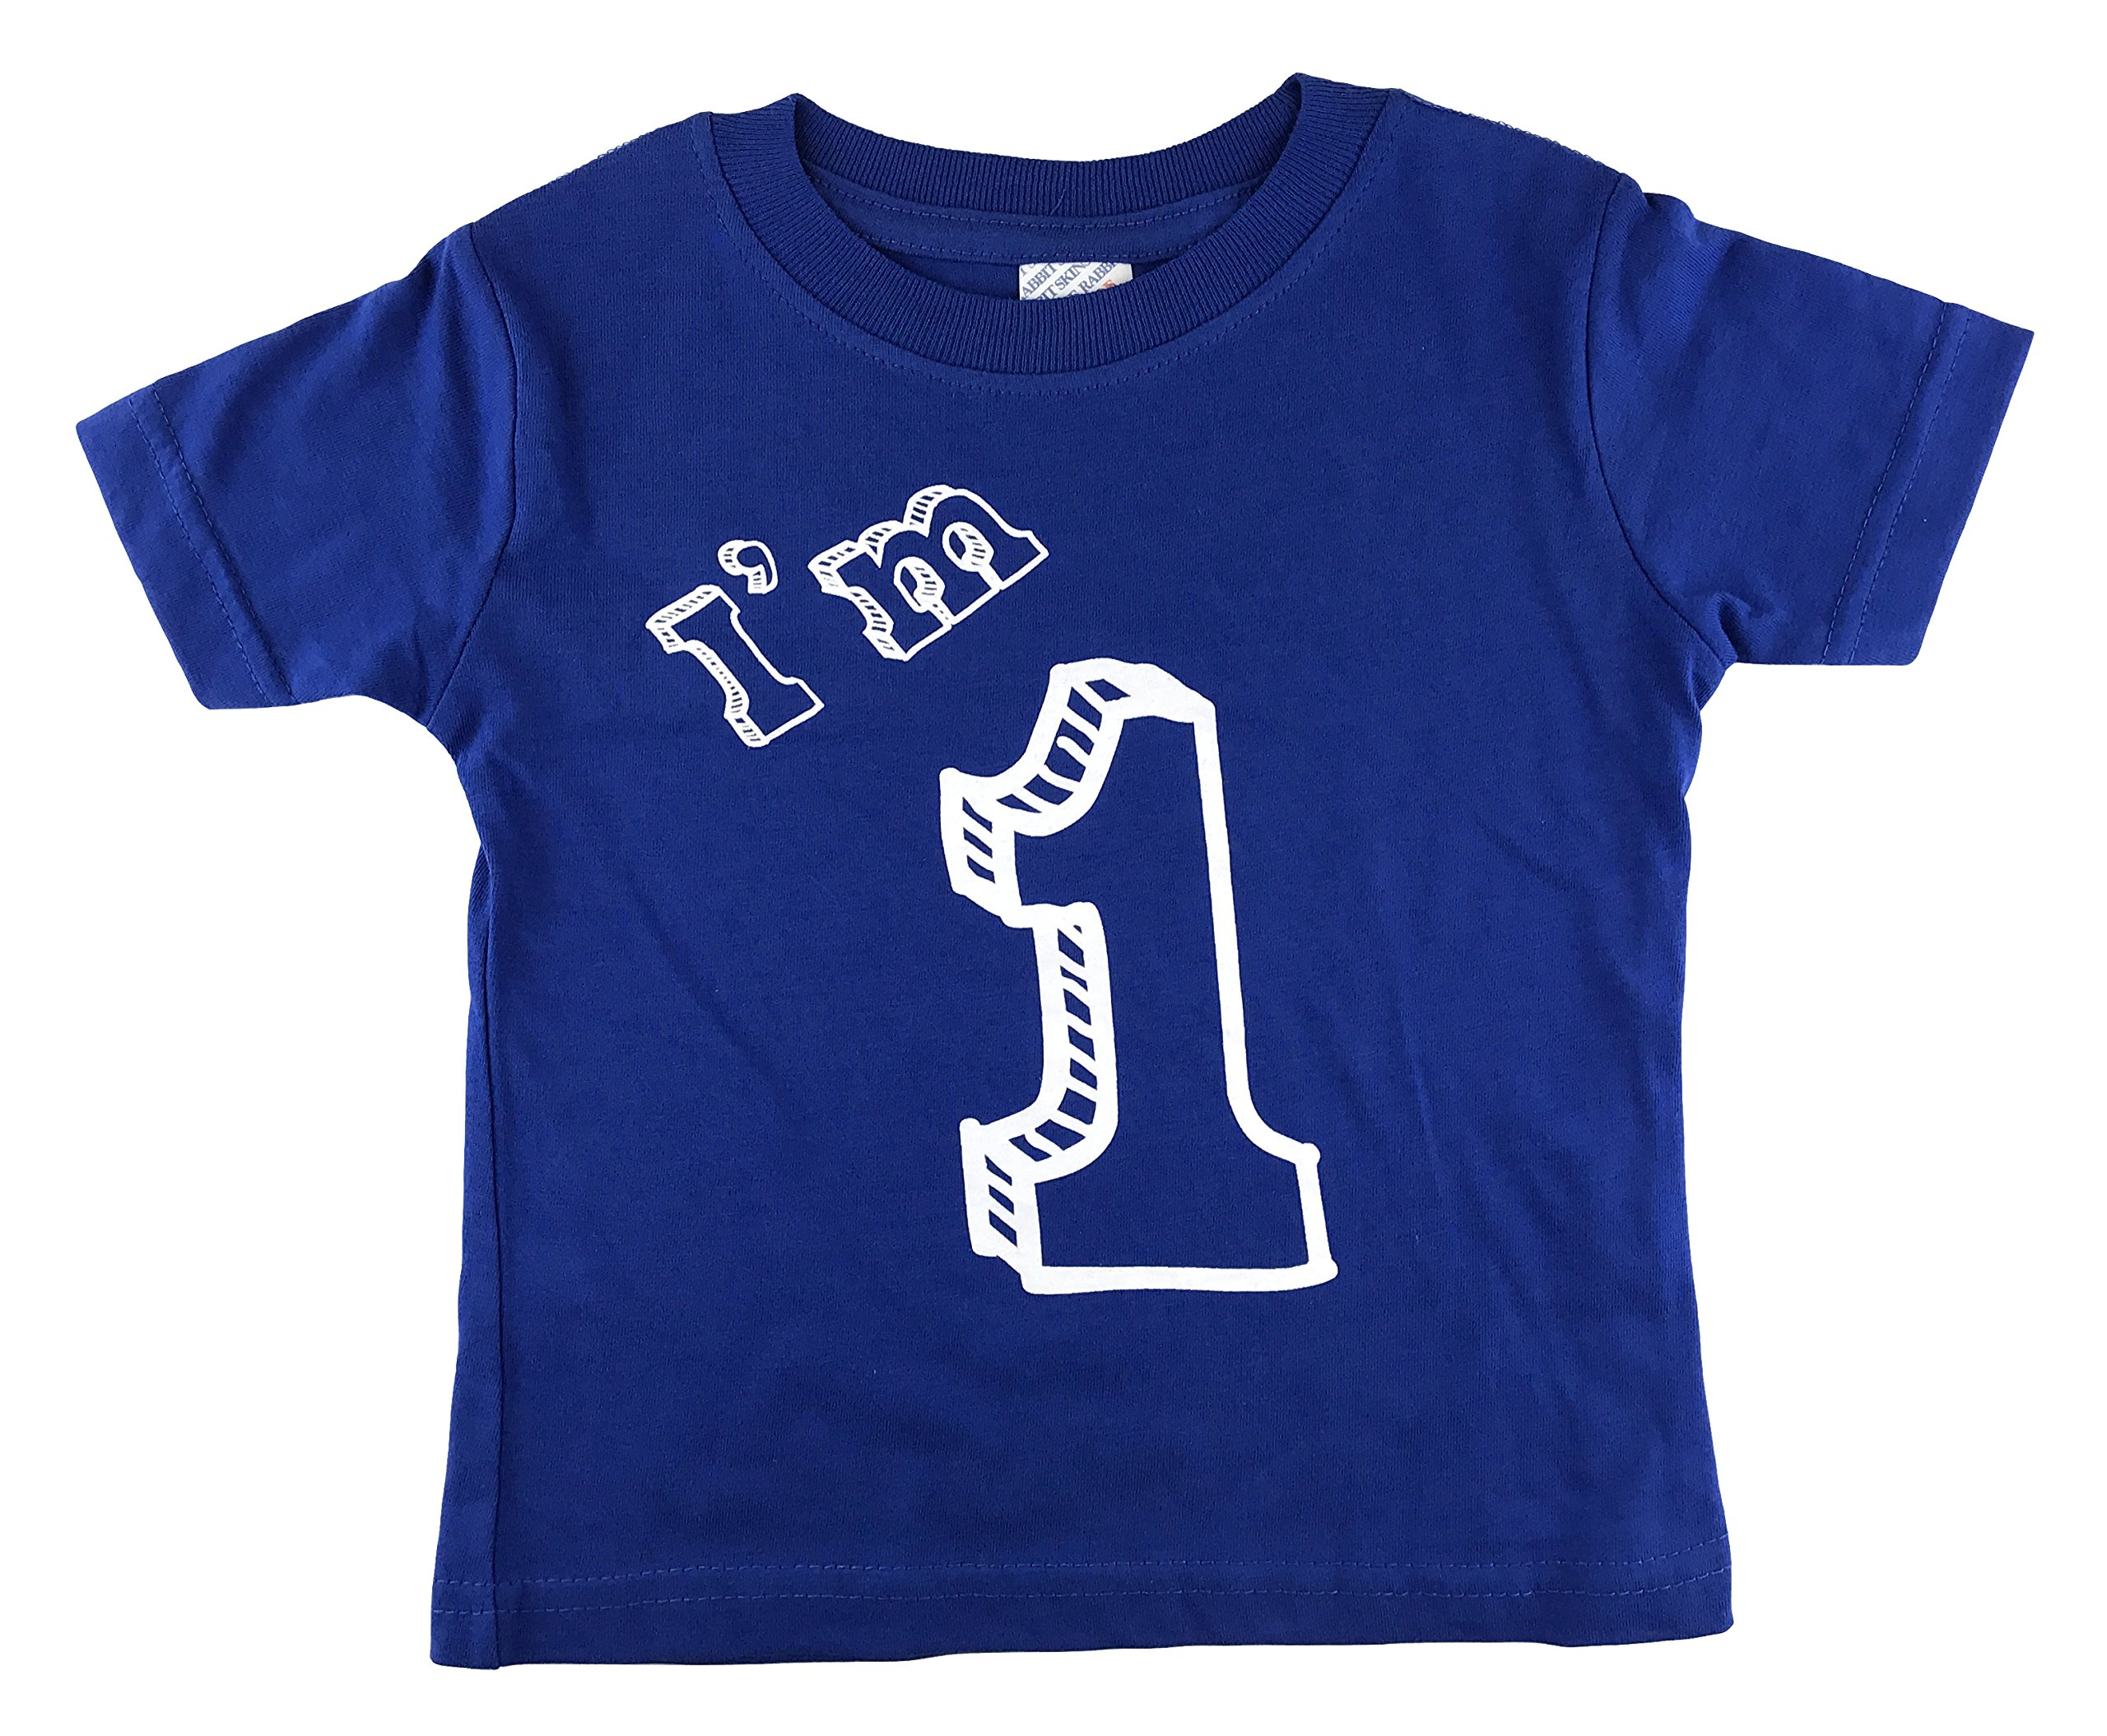 I'm 1 T-Shirt - One Year Old Birthday Party (12 Month, Royal Blue) by how-z-it